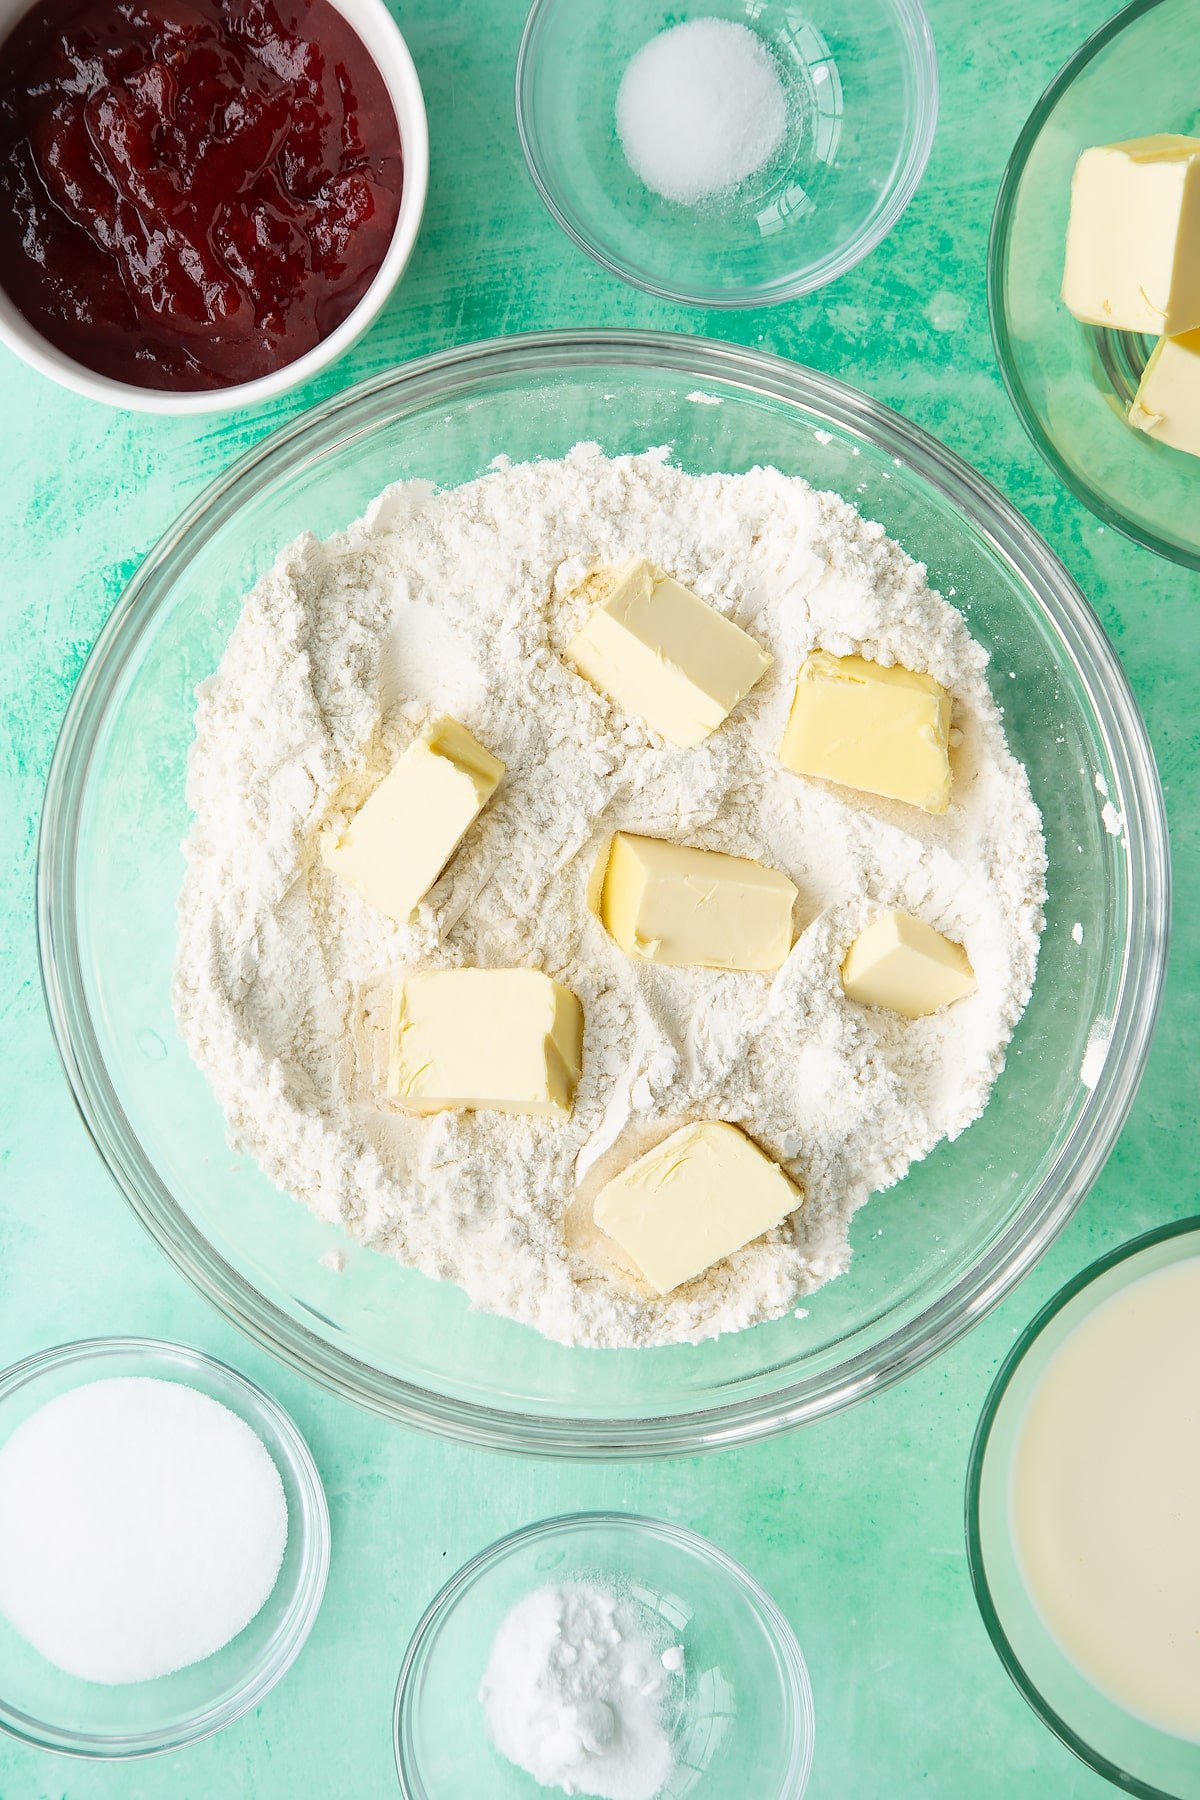 Flour, sugar, salt and bicarbonate of soda mixed together in a bowl with cubed vegan butter on top. Ingredients to make dairy free scones surround the bowl.